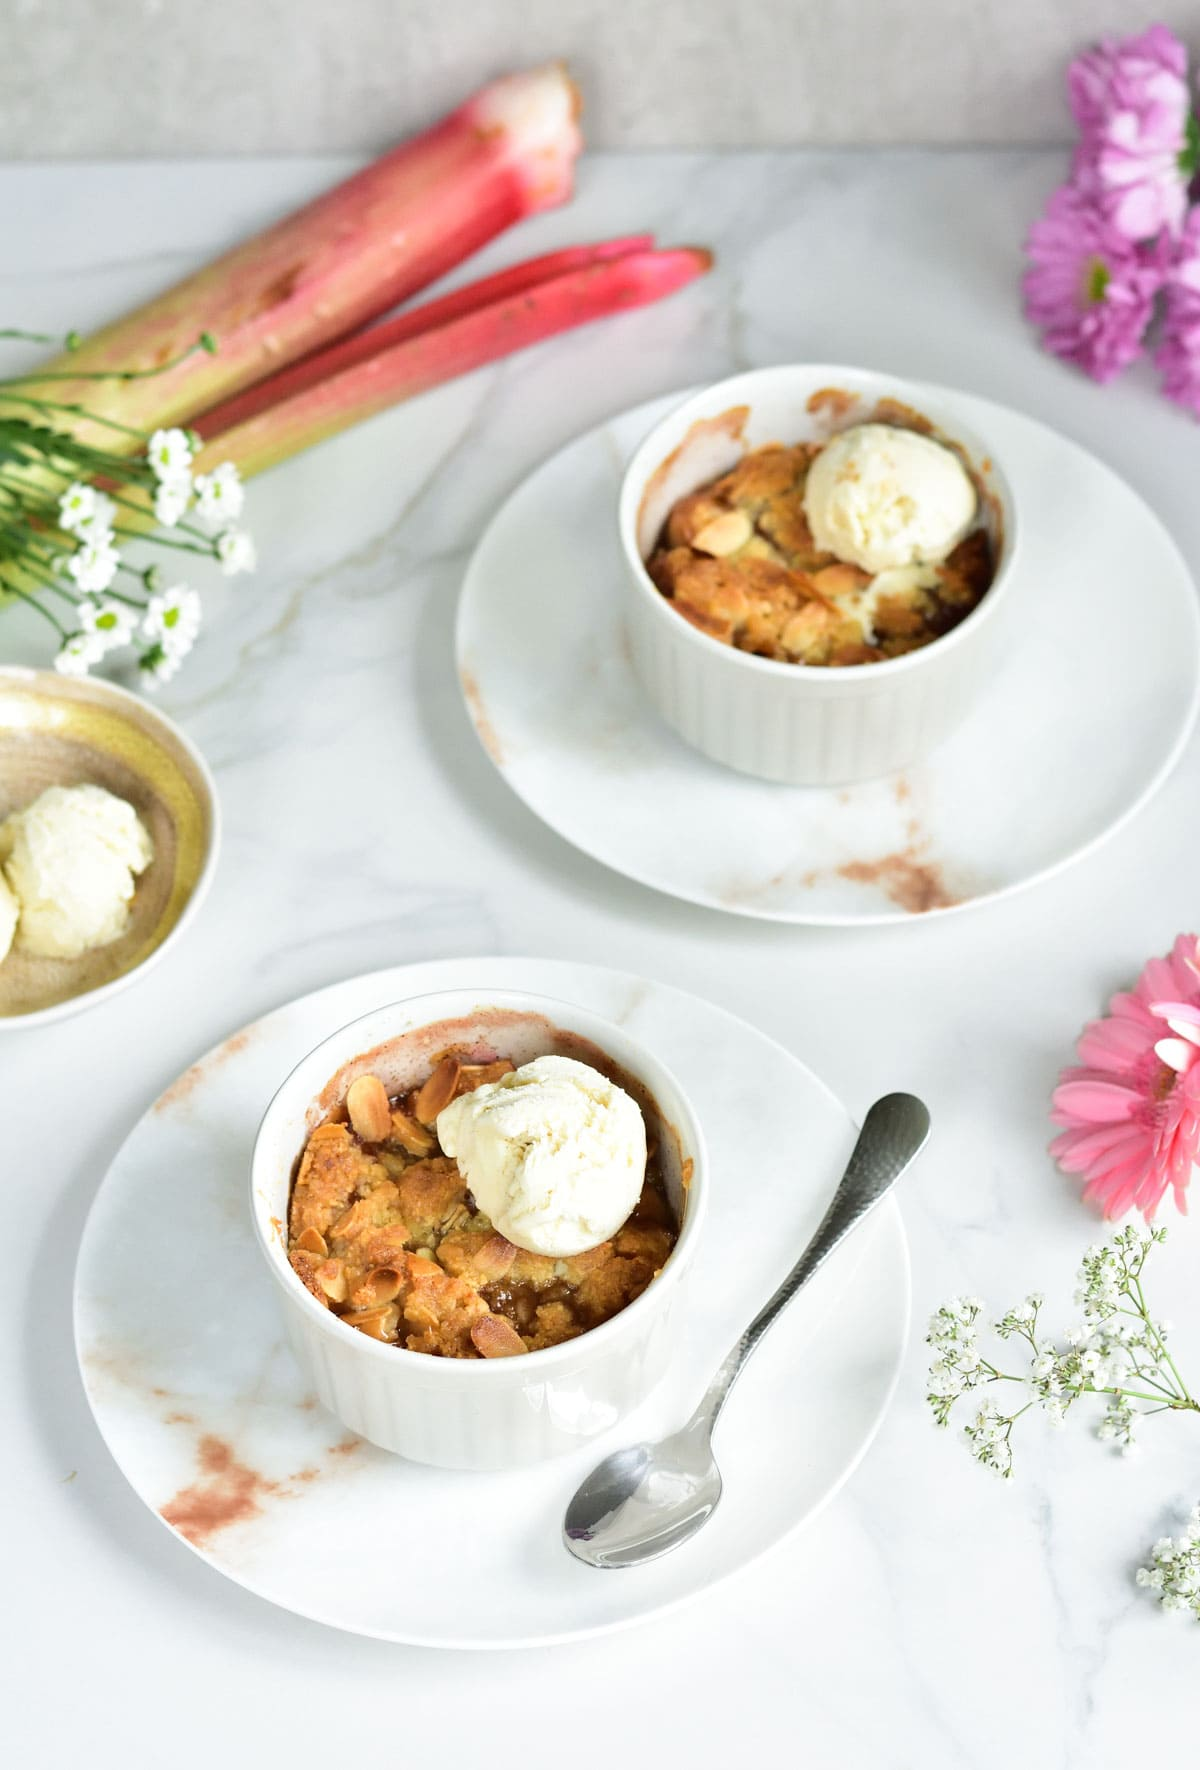 2 ramekins with rhubarb crumble, flowers scattered around